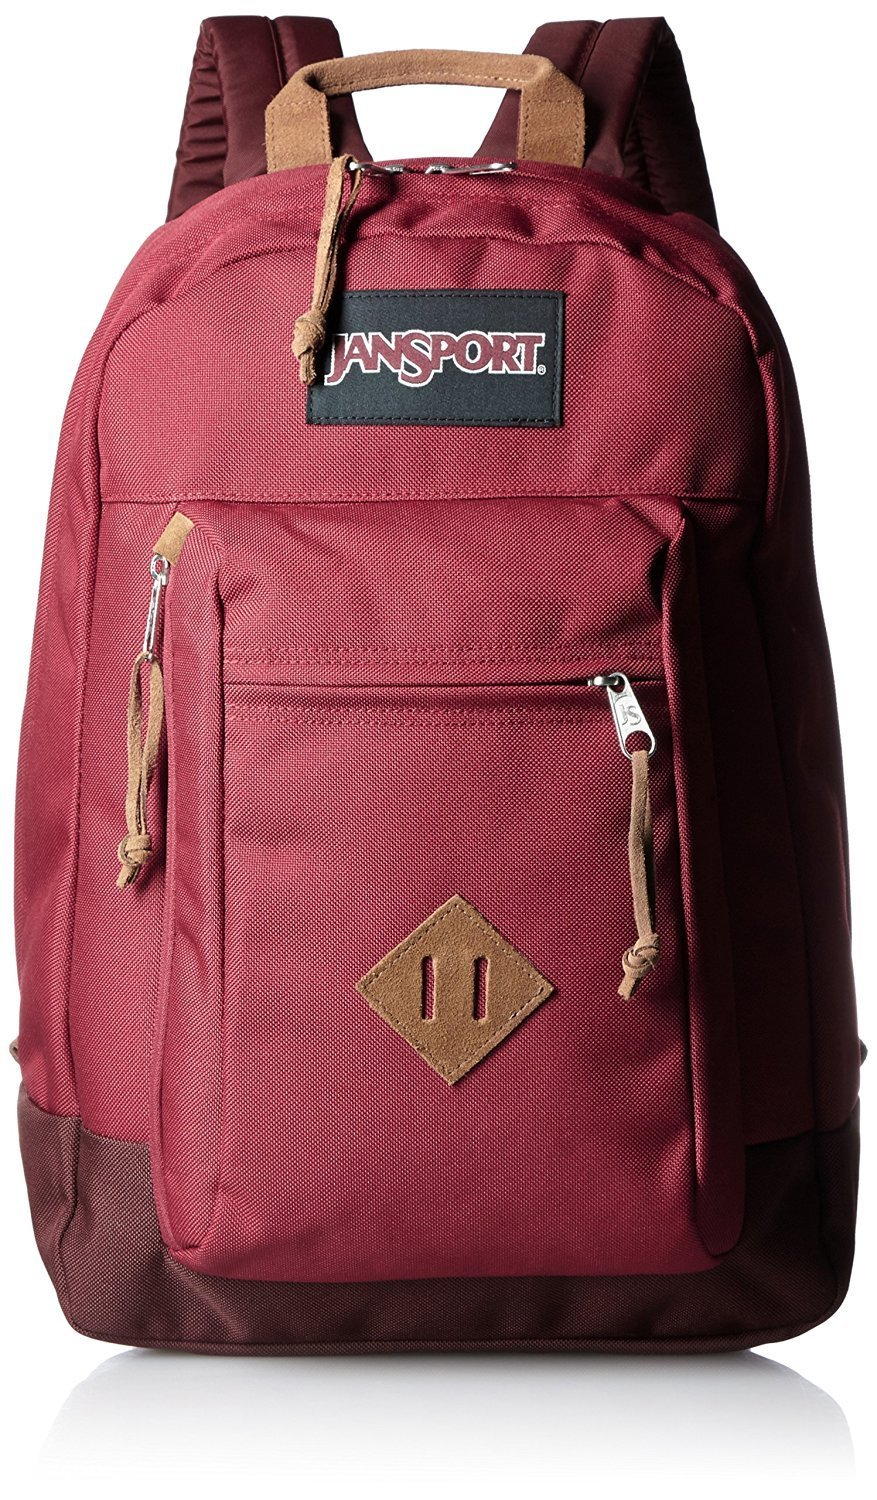 26c75c5ca6 Get Quotations · JanSport Reilly Backpack (Viking Red)